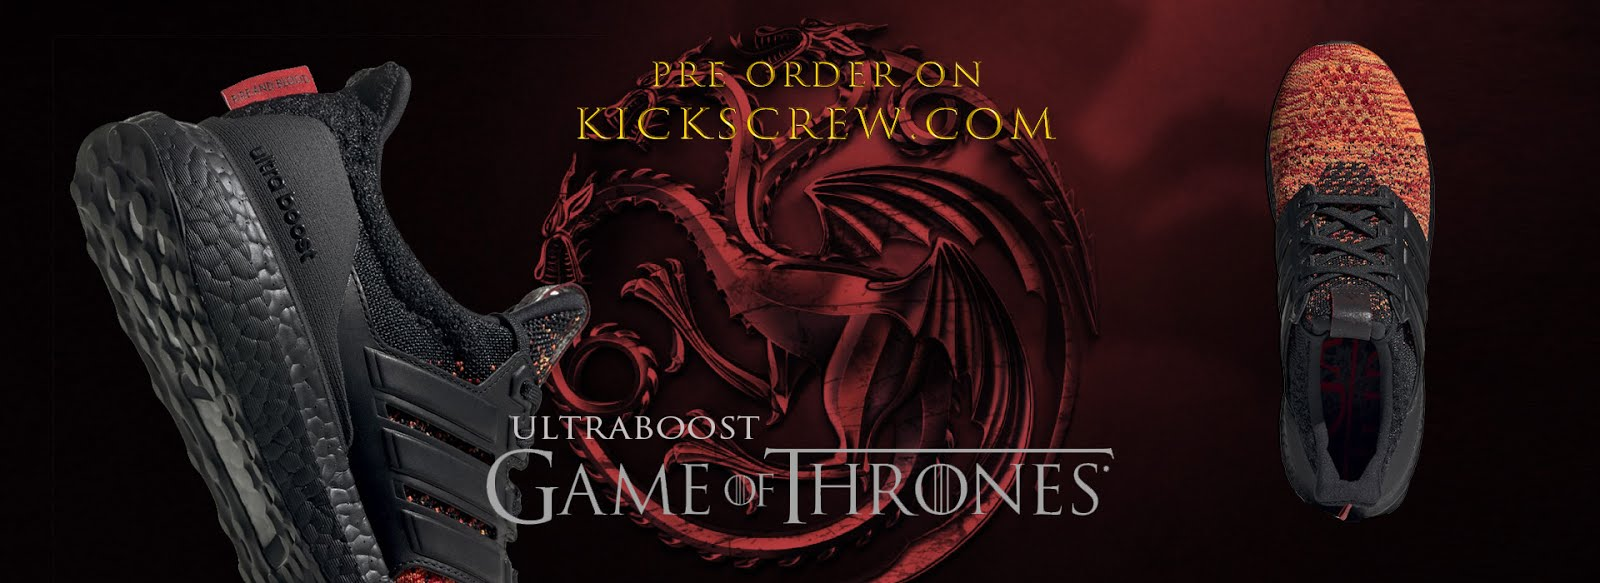 45d19385323f4 Game of Thrones x adidas ultraboost Pre Order Now and release on 15 Feb. Cop  them before GOF Season 8 release! adidas UltraBoost GOT - Black Orange  (EE3709) ...